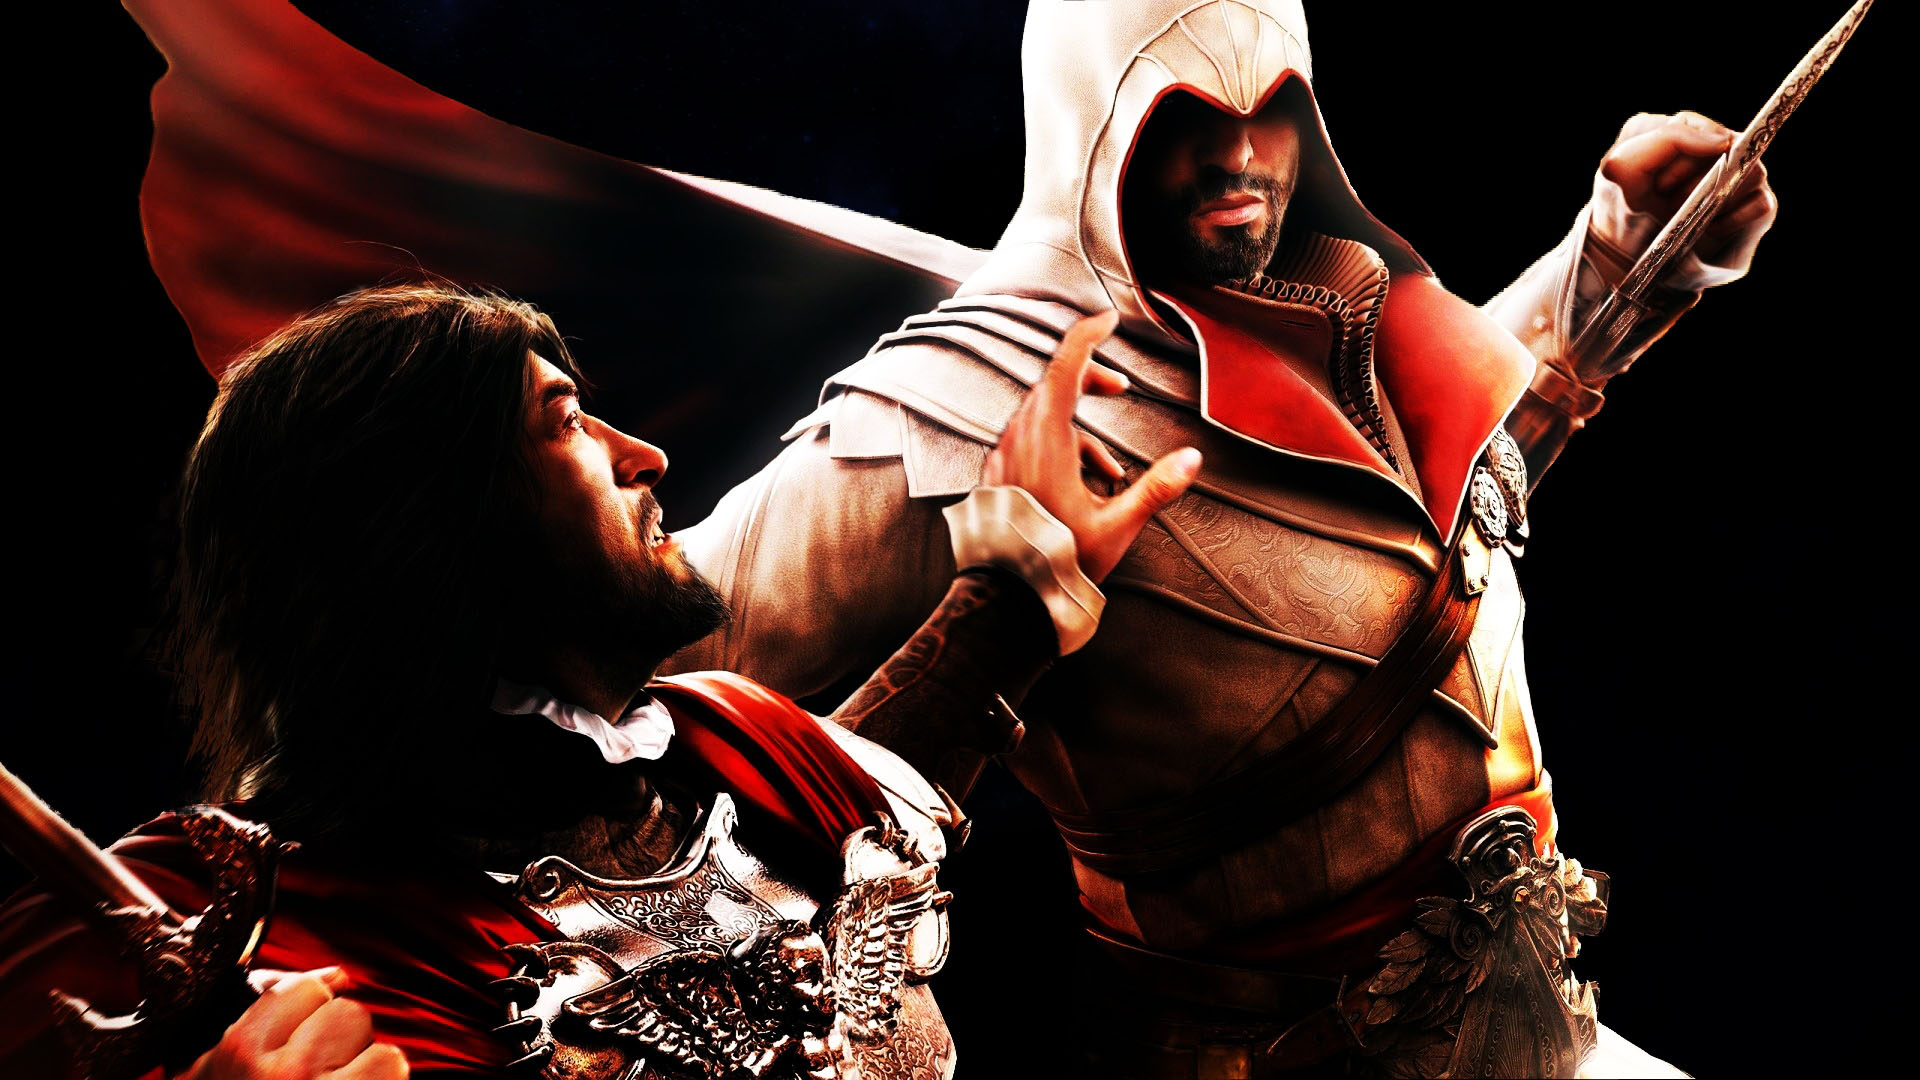 Jordan Carver Creed Killing Best Games Hd Ezio 364600 Wallpaper wallpaper